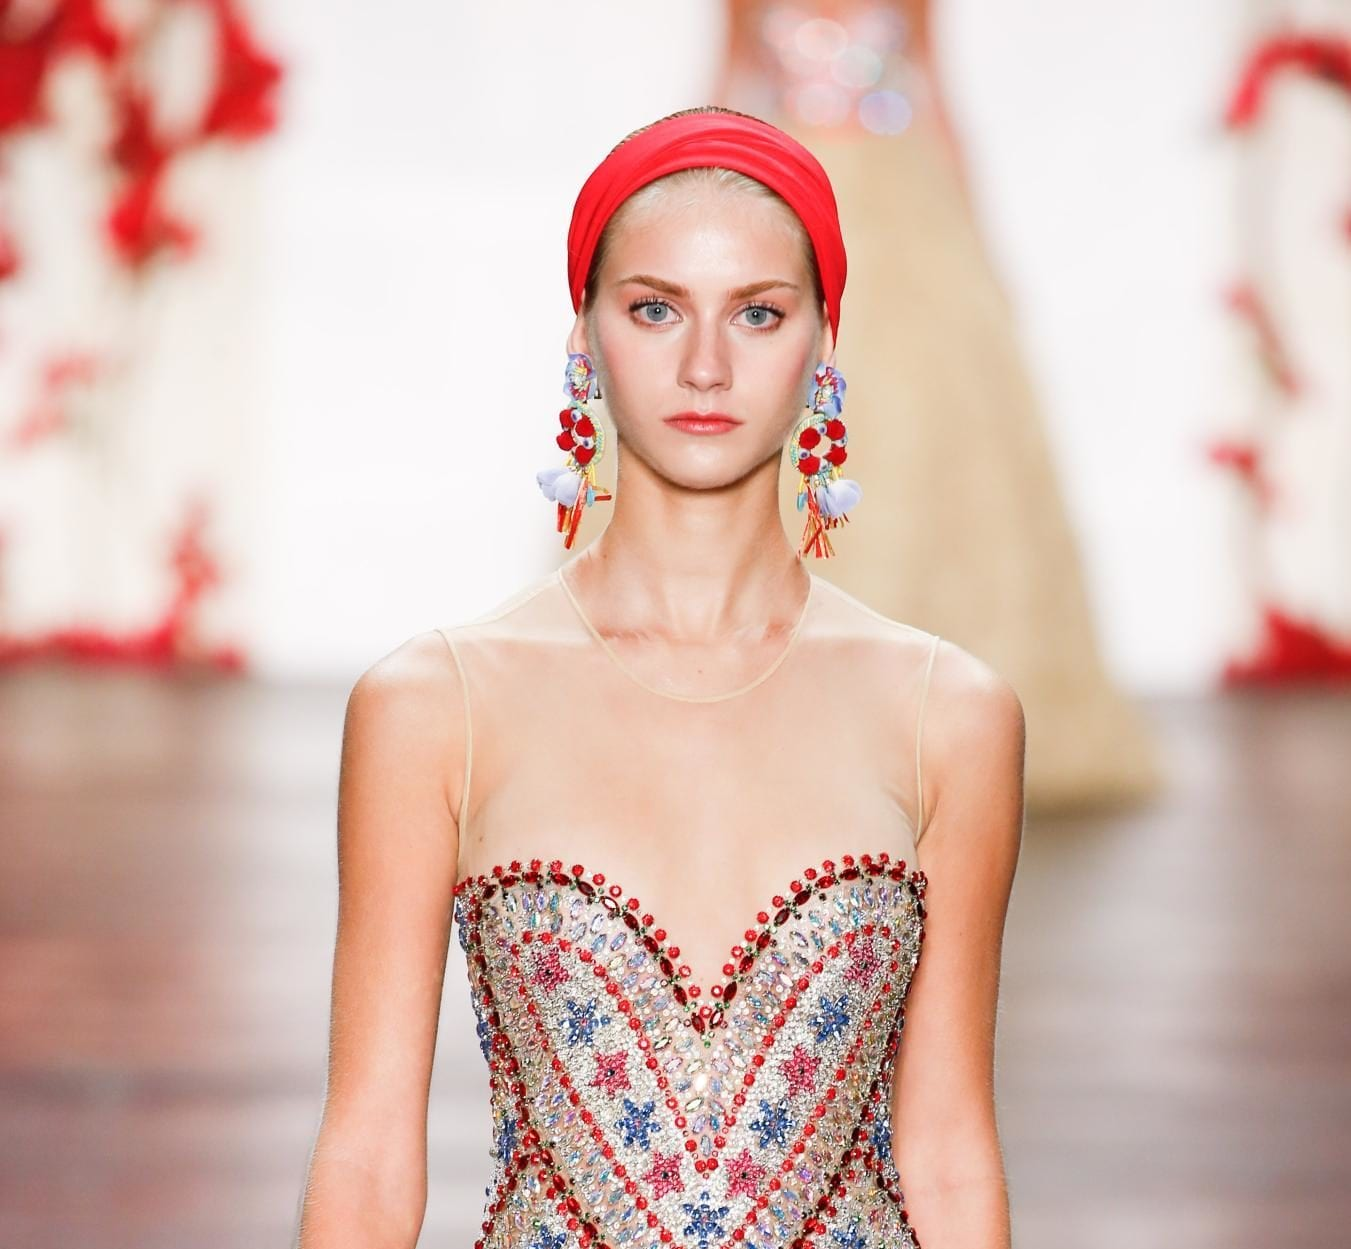 Gym hairstyles for short hair: Blonde model on runway with a red satin headband, wearing a strapless colourful dress